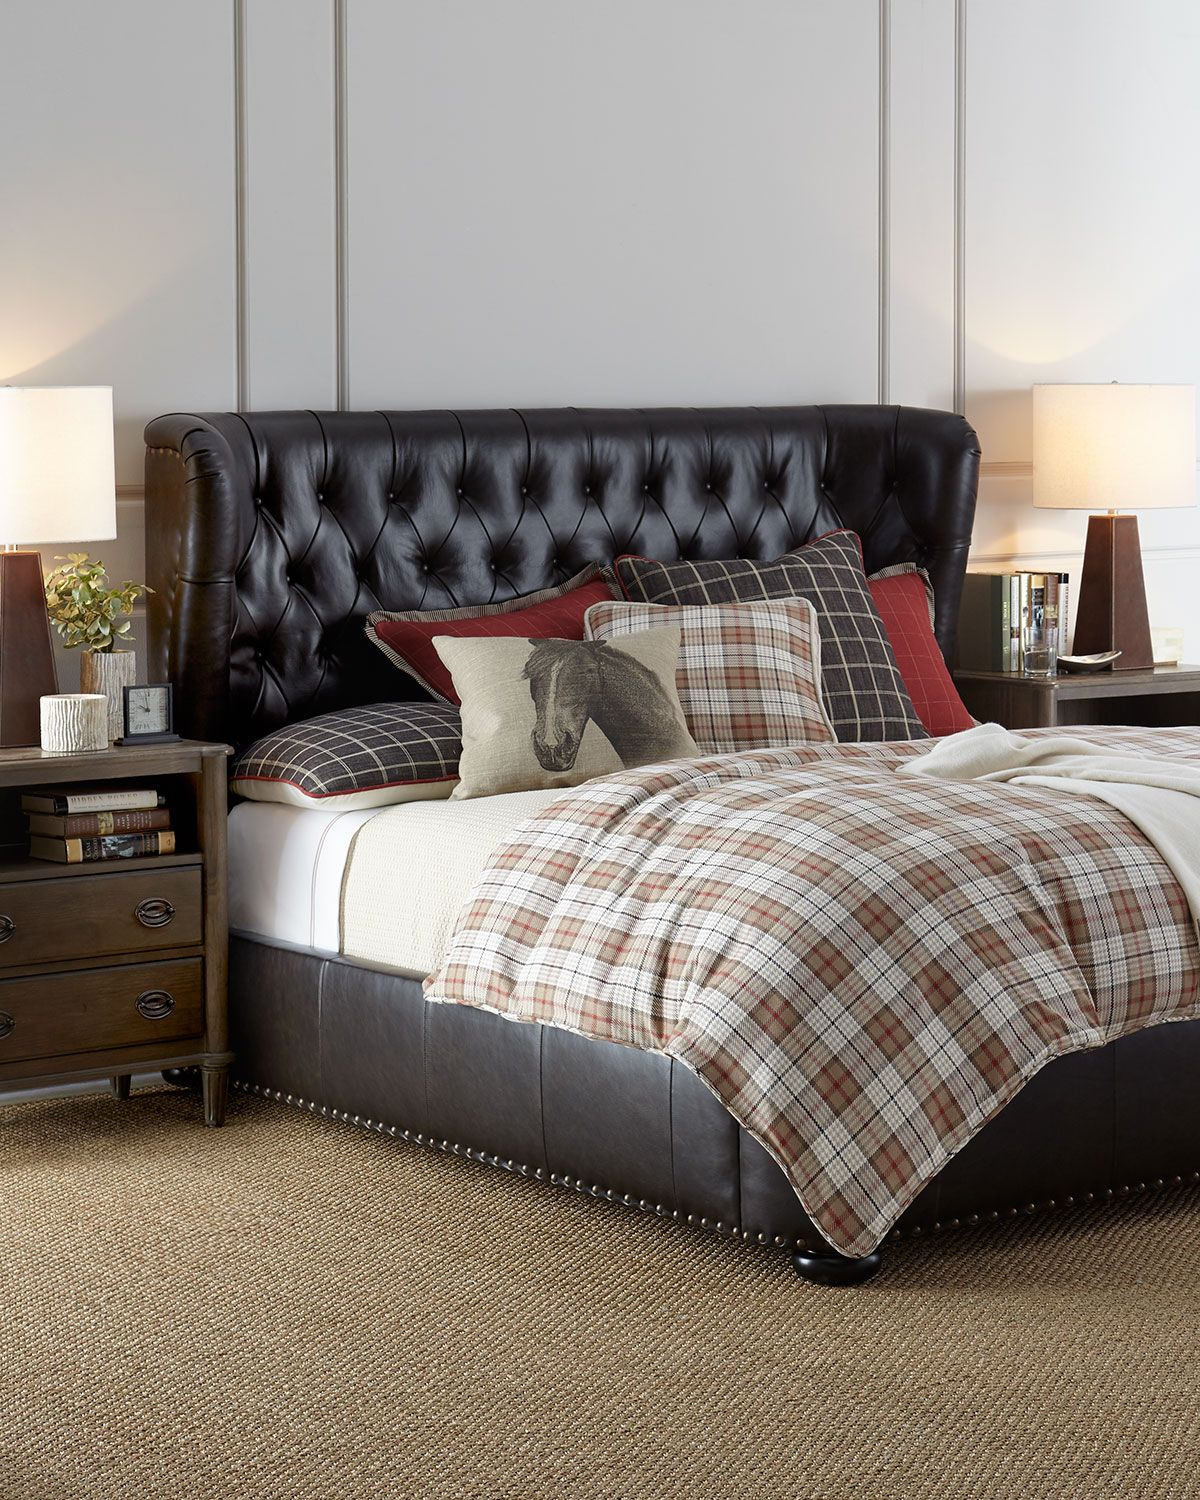 Gables Tufted Leather King Bed King beds, Leather bed